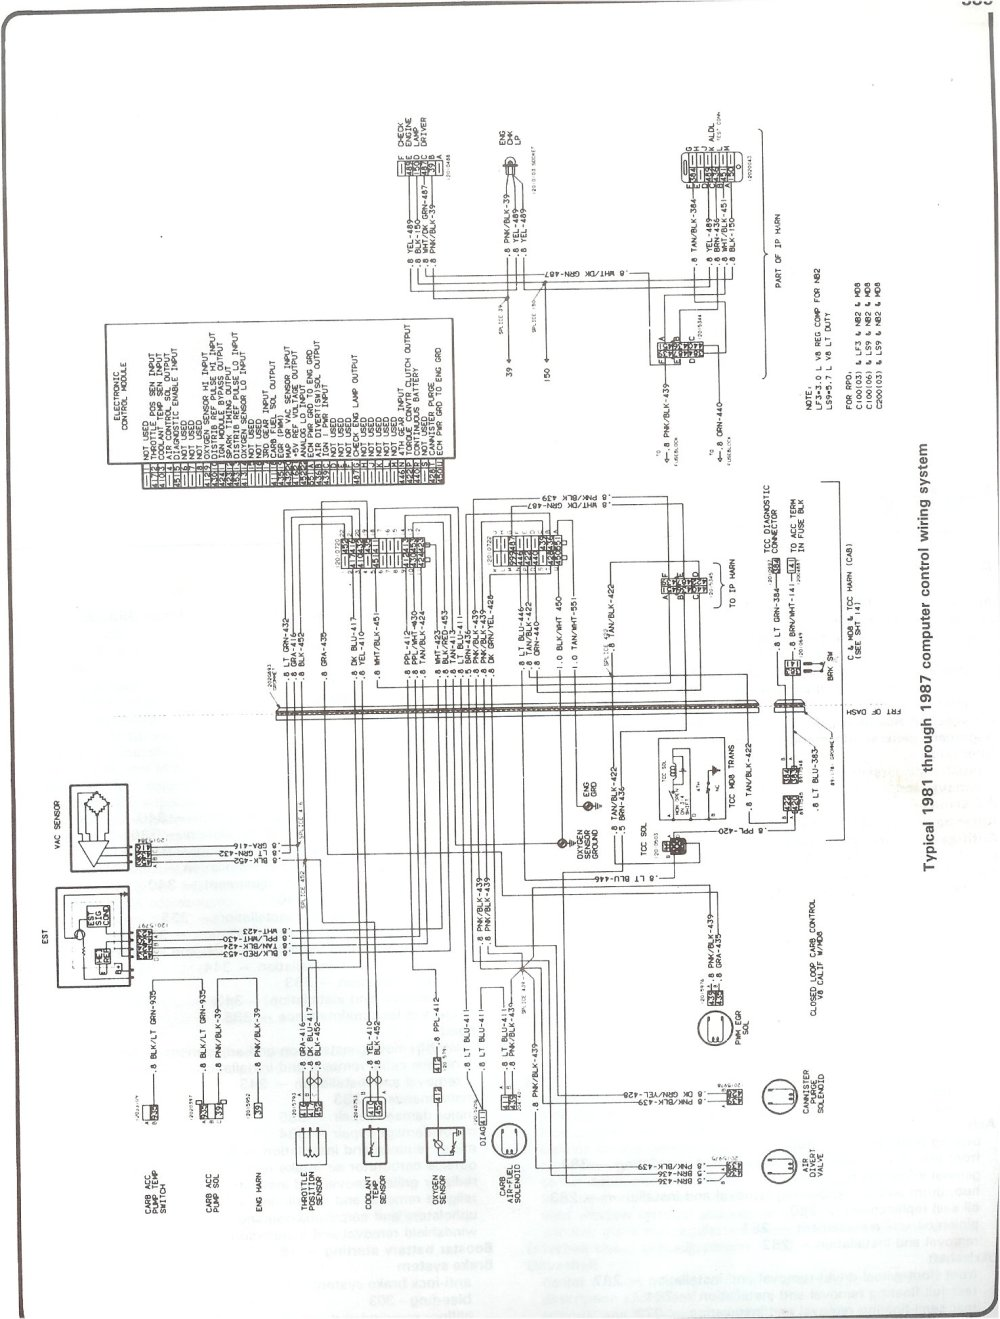 medium resolution of 1976 chevy 350 wiring diagram simple wiring diagrams 1 wire alternator wiring diagram for 1970 chevy truck 1975 chevy 350 wiring diagram